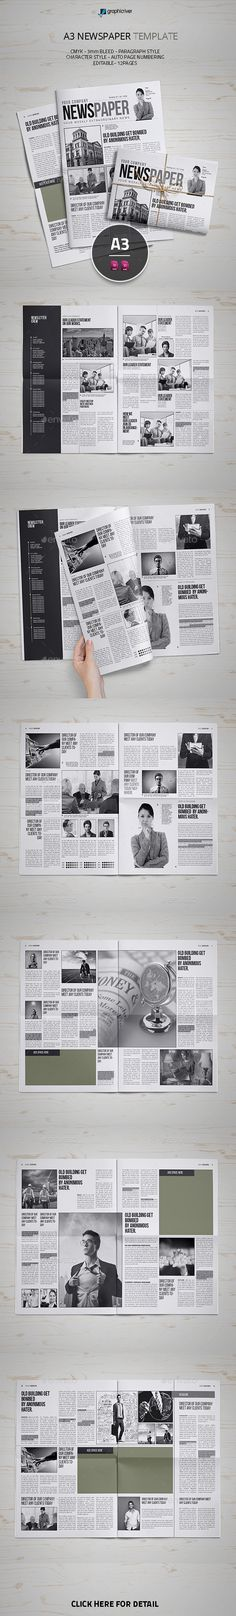 A3 Newspaper Template InDesign INDD #design Download: http://graphicriver.net/item/a3-newspaper-template/13422885?ref=ksioks